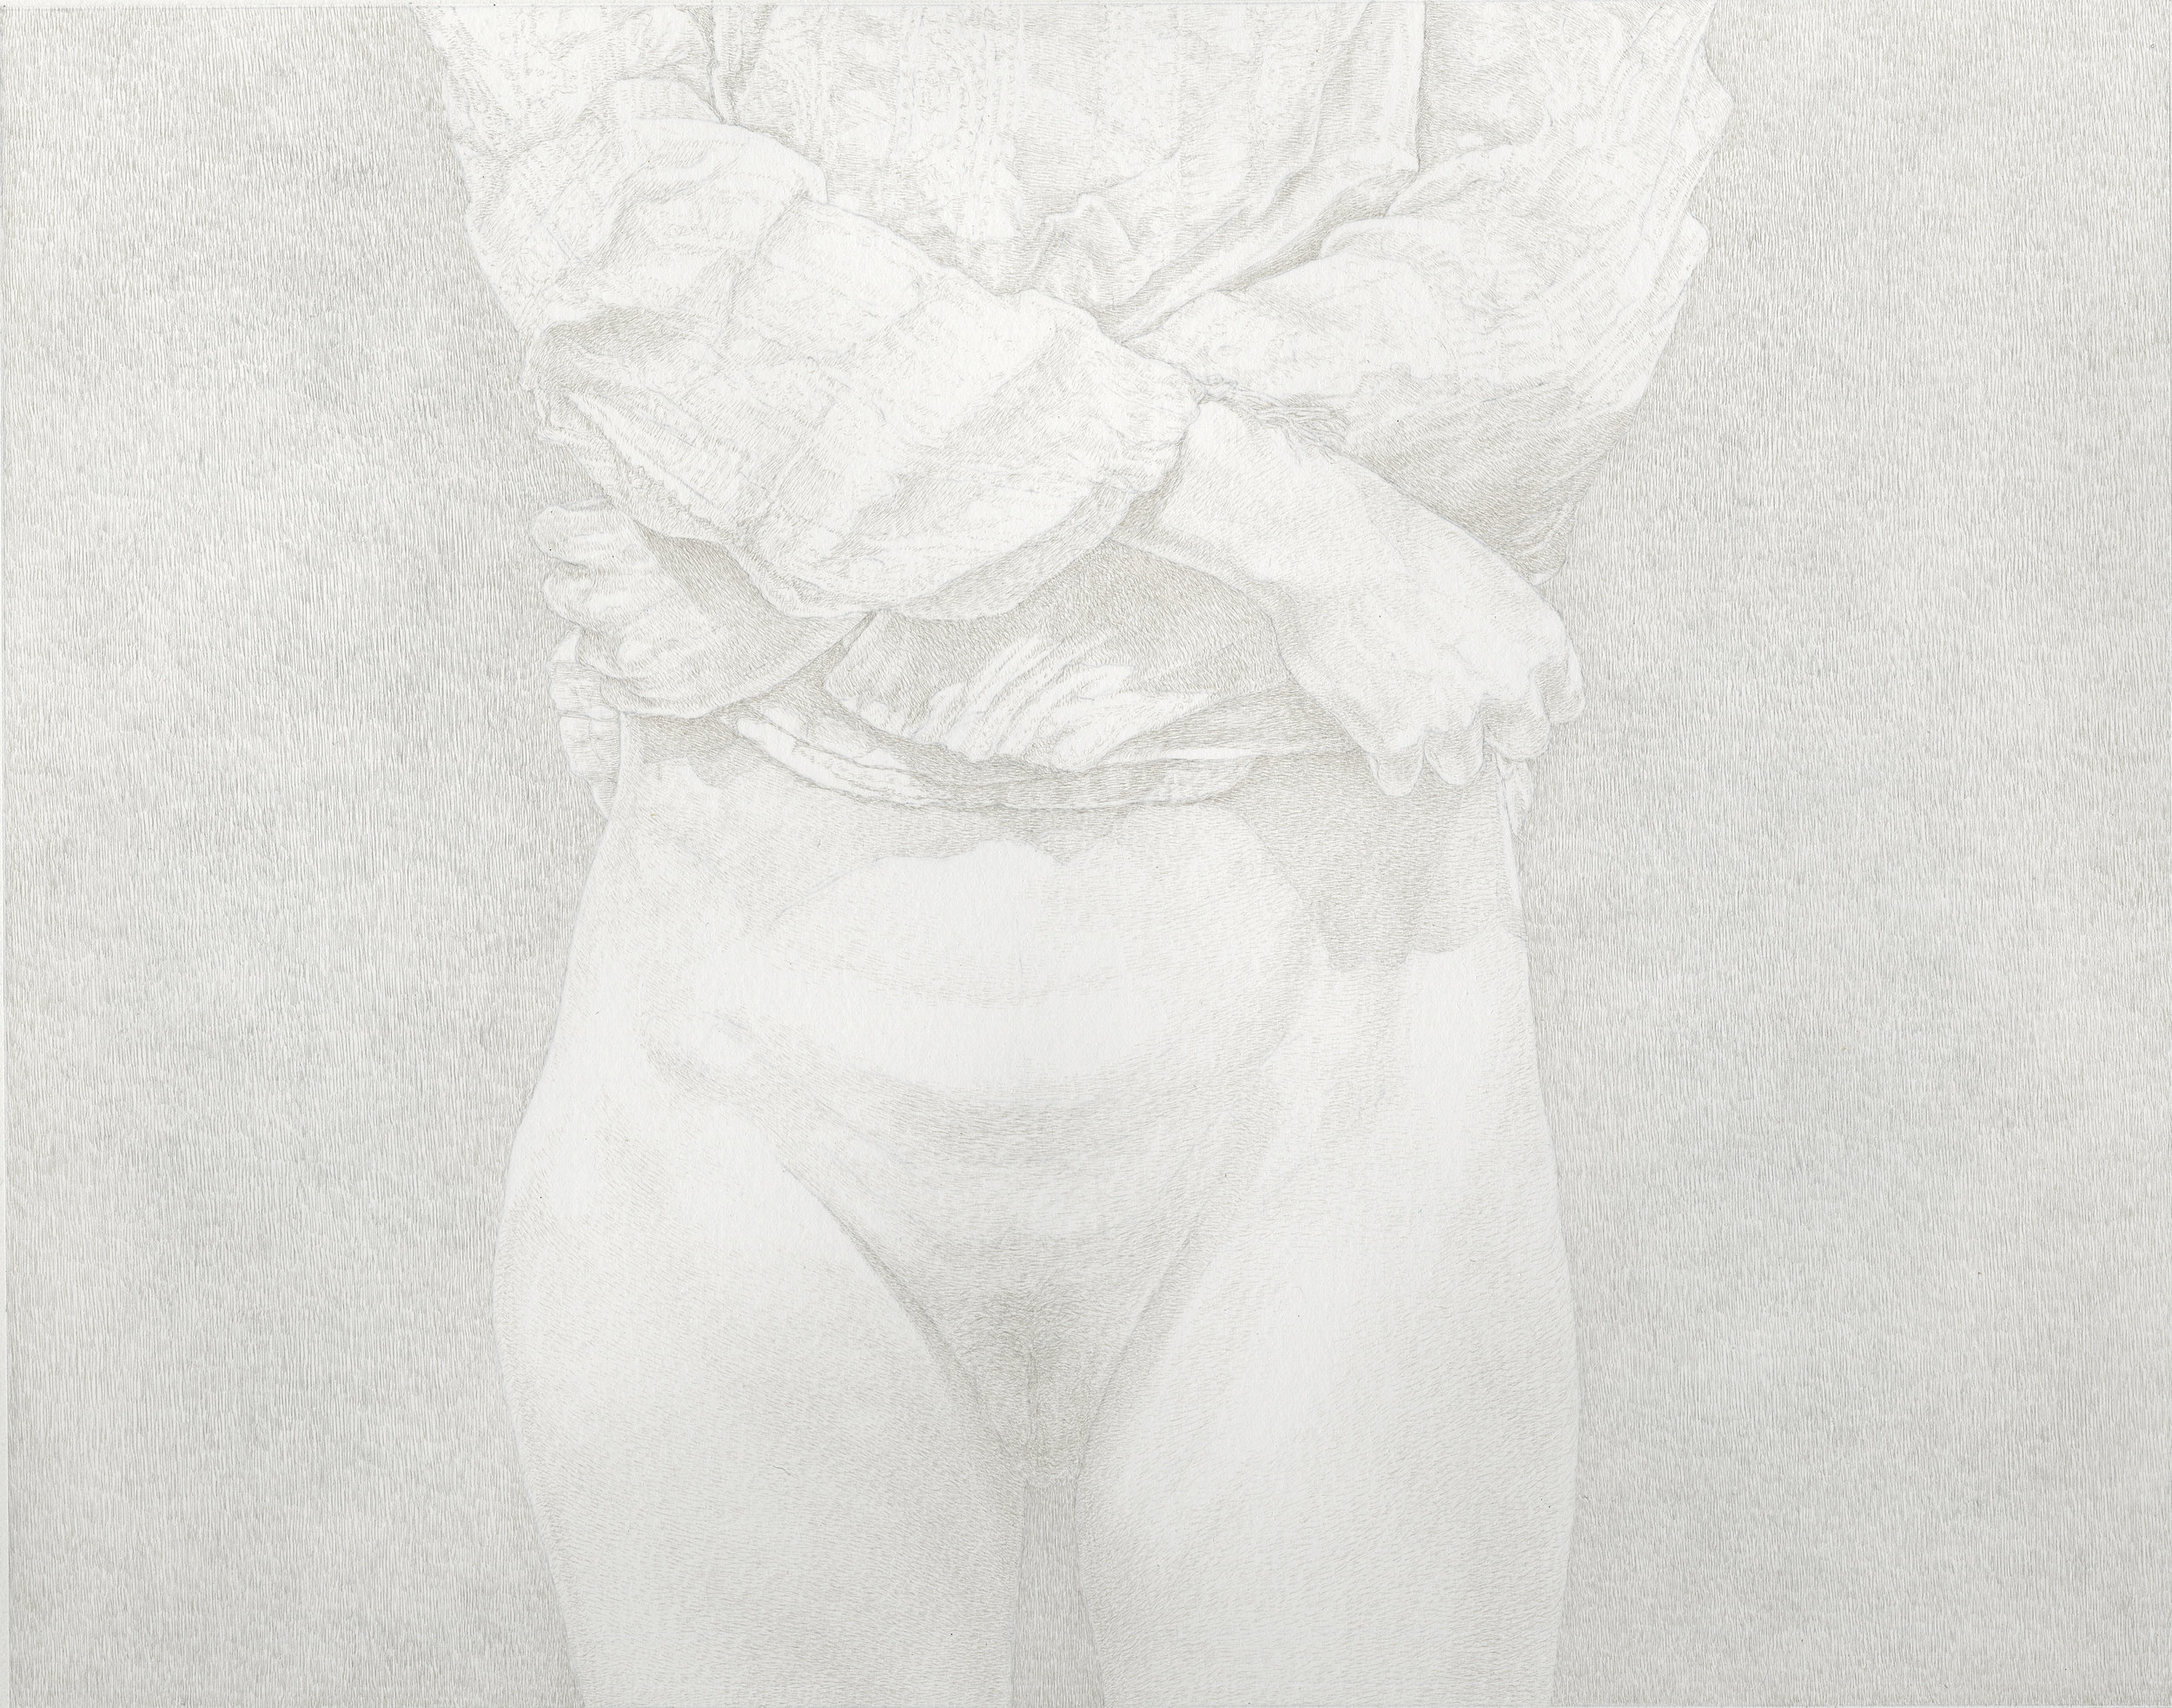 """""""The Friday Sessions - The Gauze Shirt 1"""" by James Grubola, silverpoint, POR"""